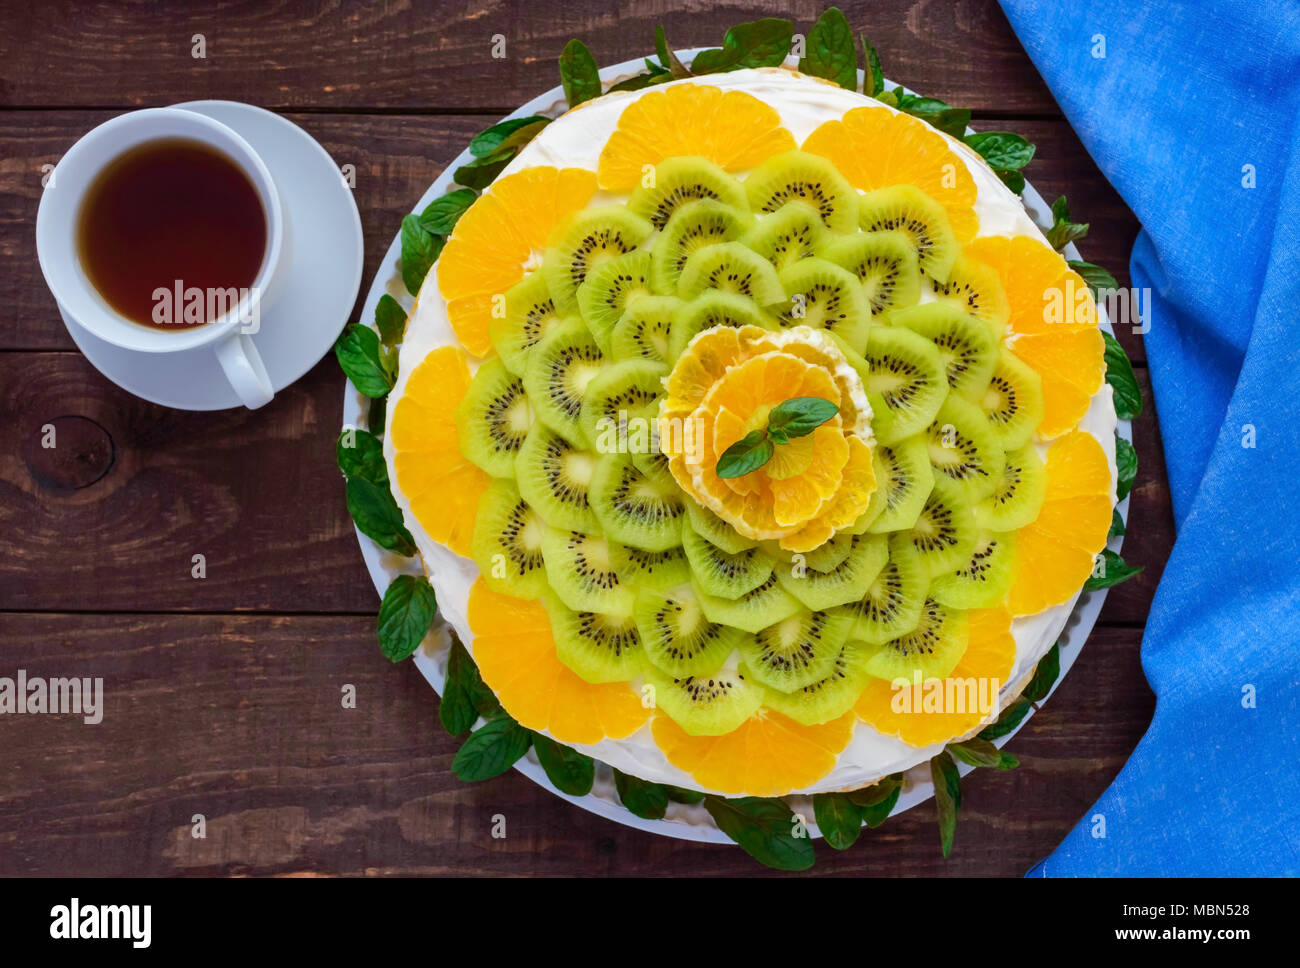 Bright round festive fruit cake decorated with kiwi, orange, mint and a cup of tea. - Stock Image